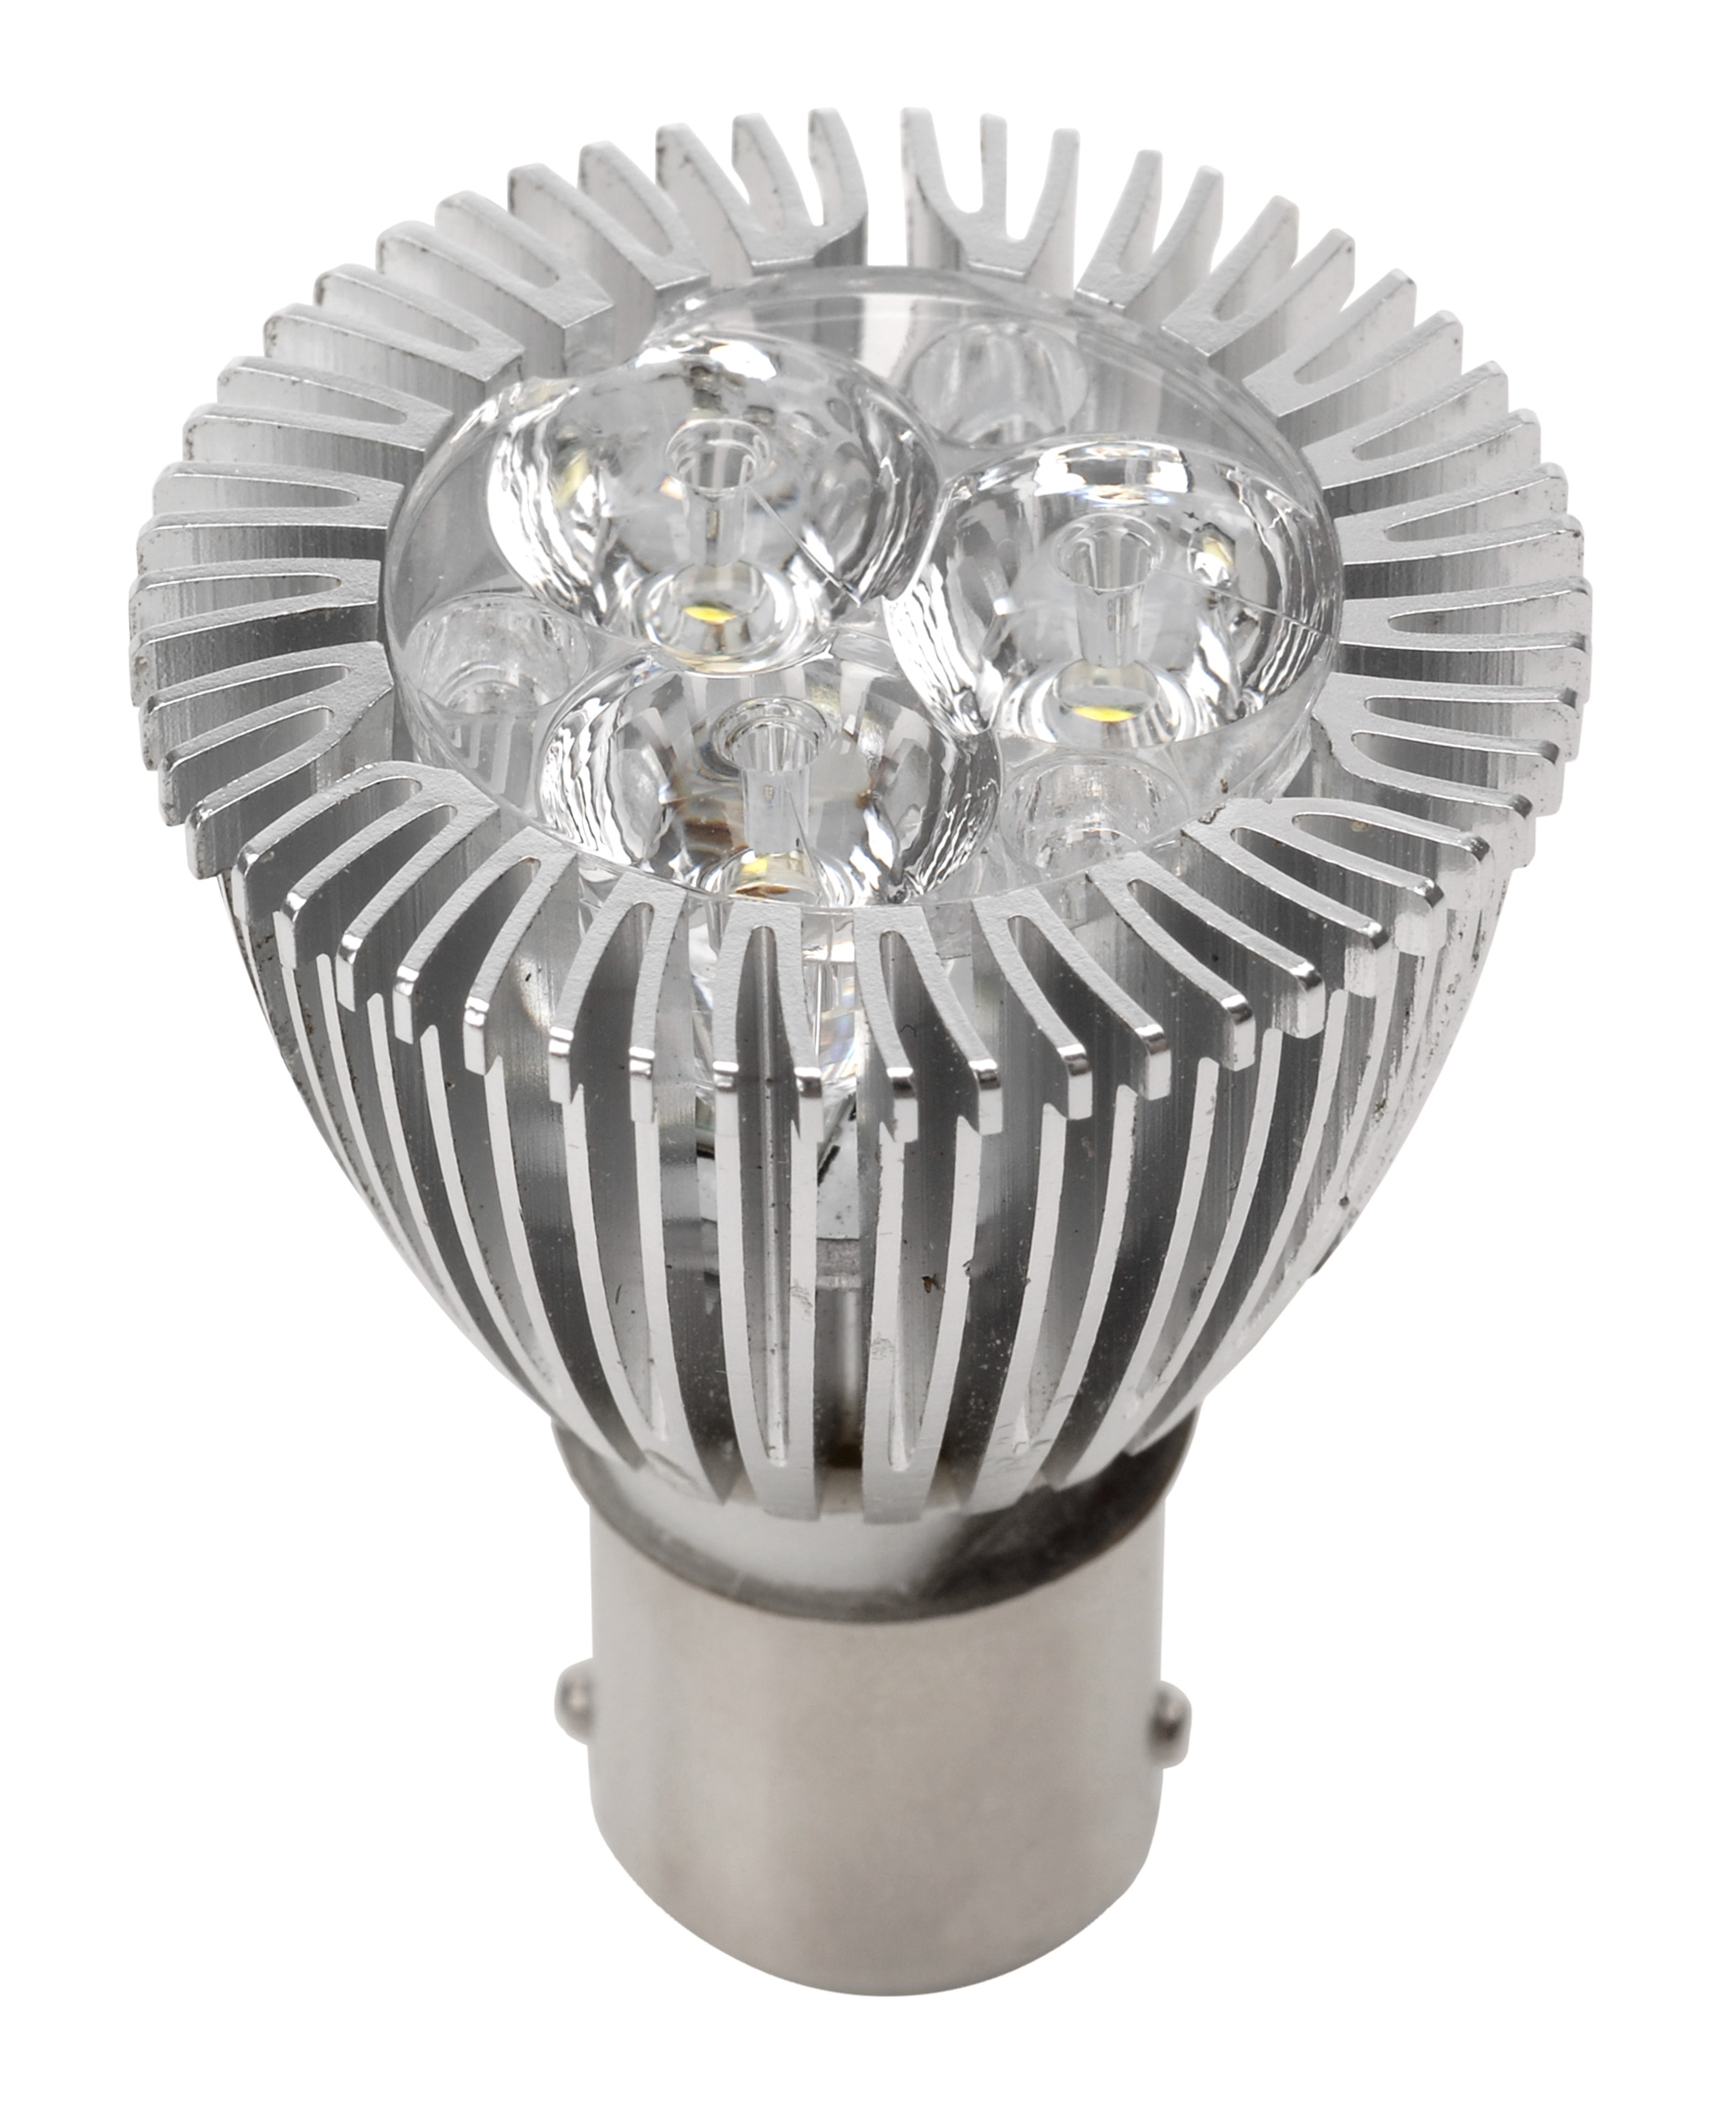 016-1383-220 AP Products Multi Purpose Light Bulb- LED Replacement